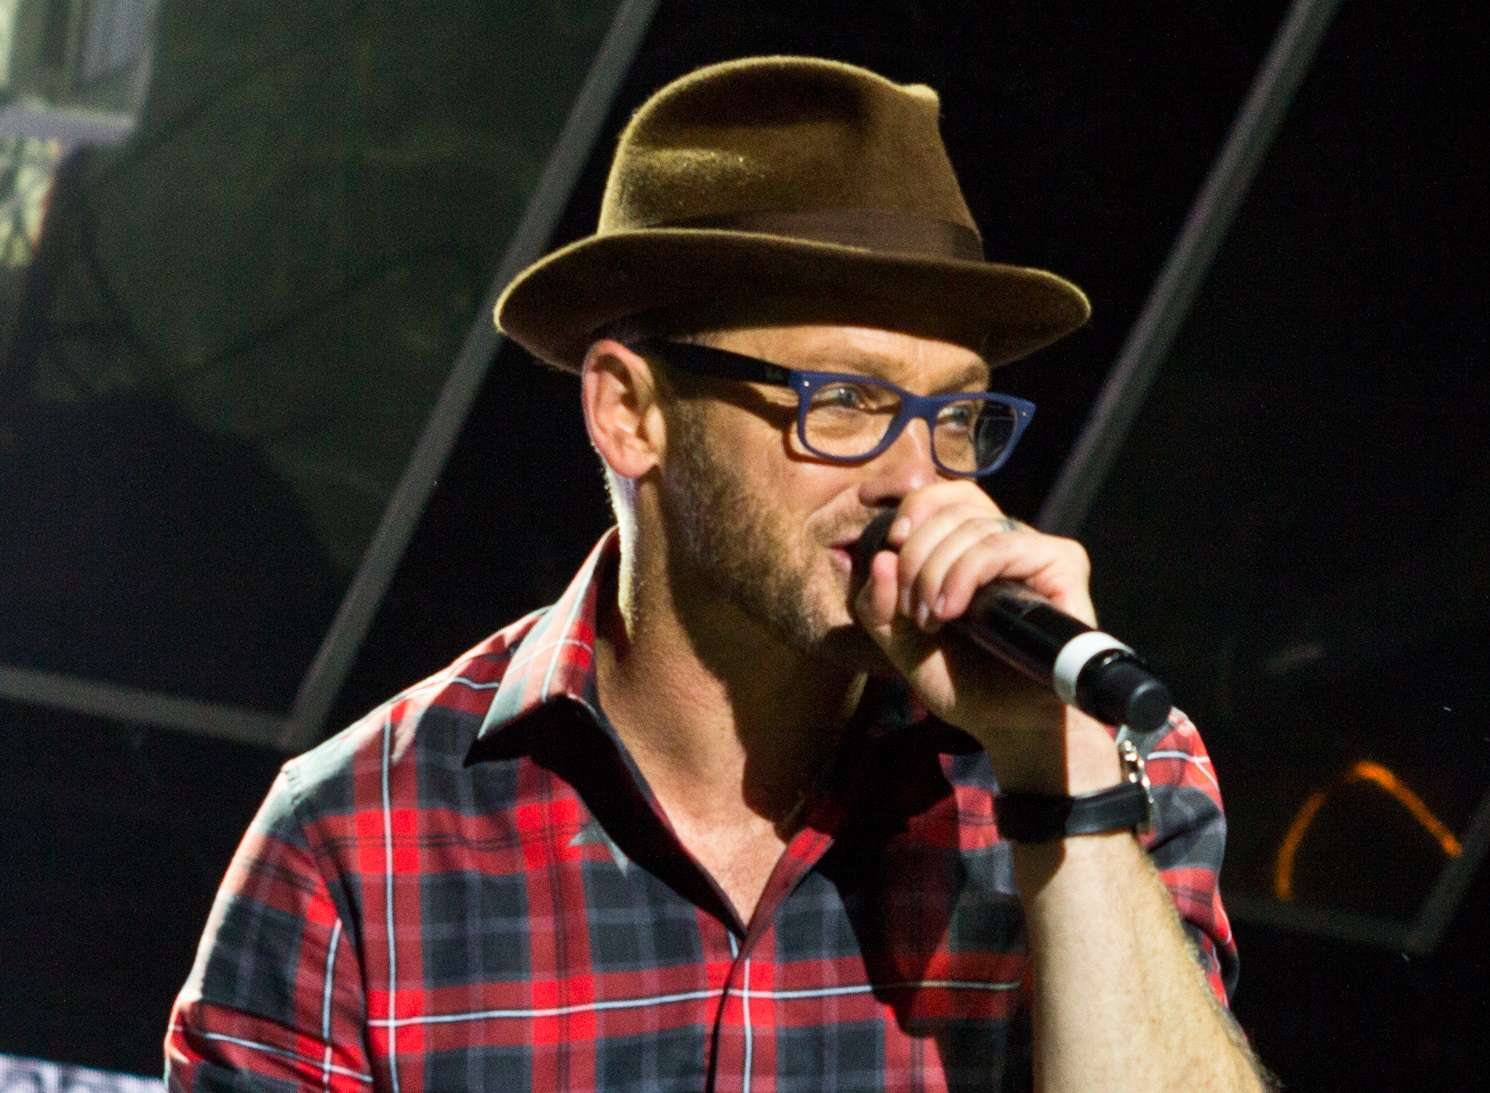 TobyMac performs live onstage.